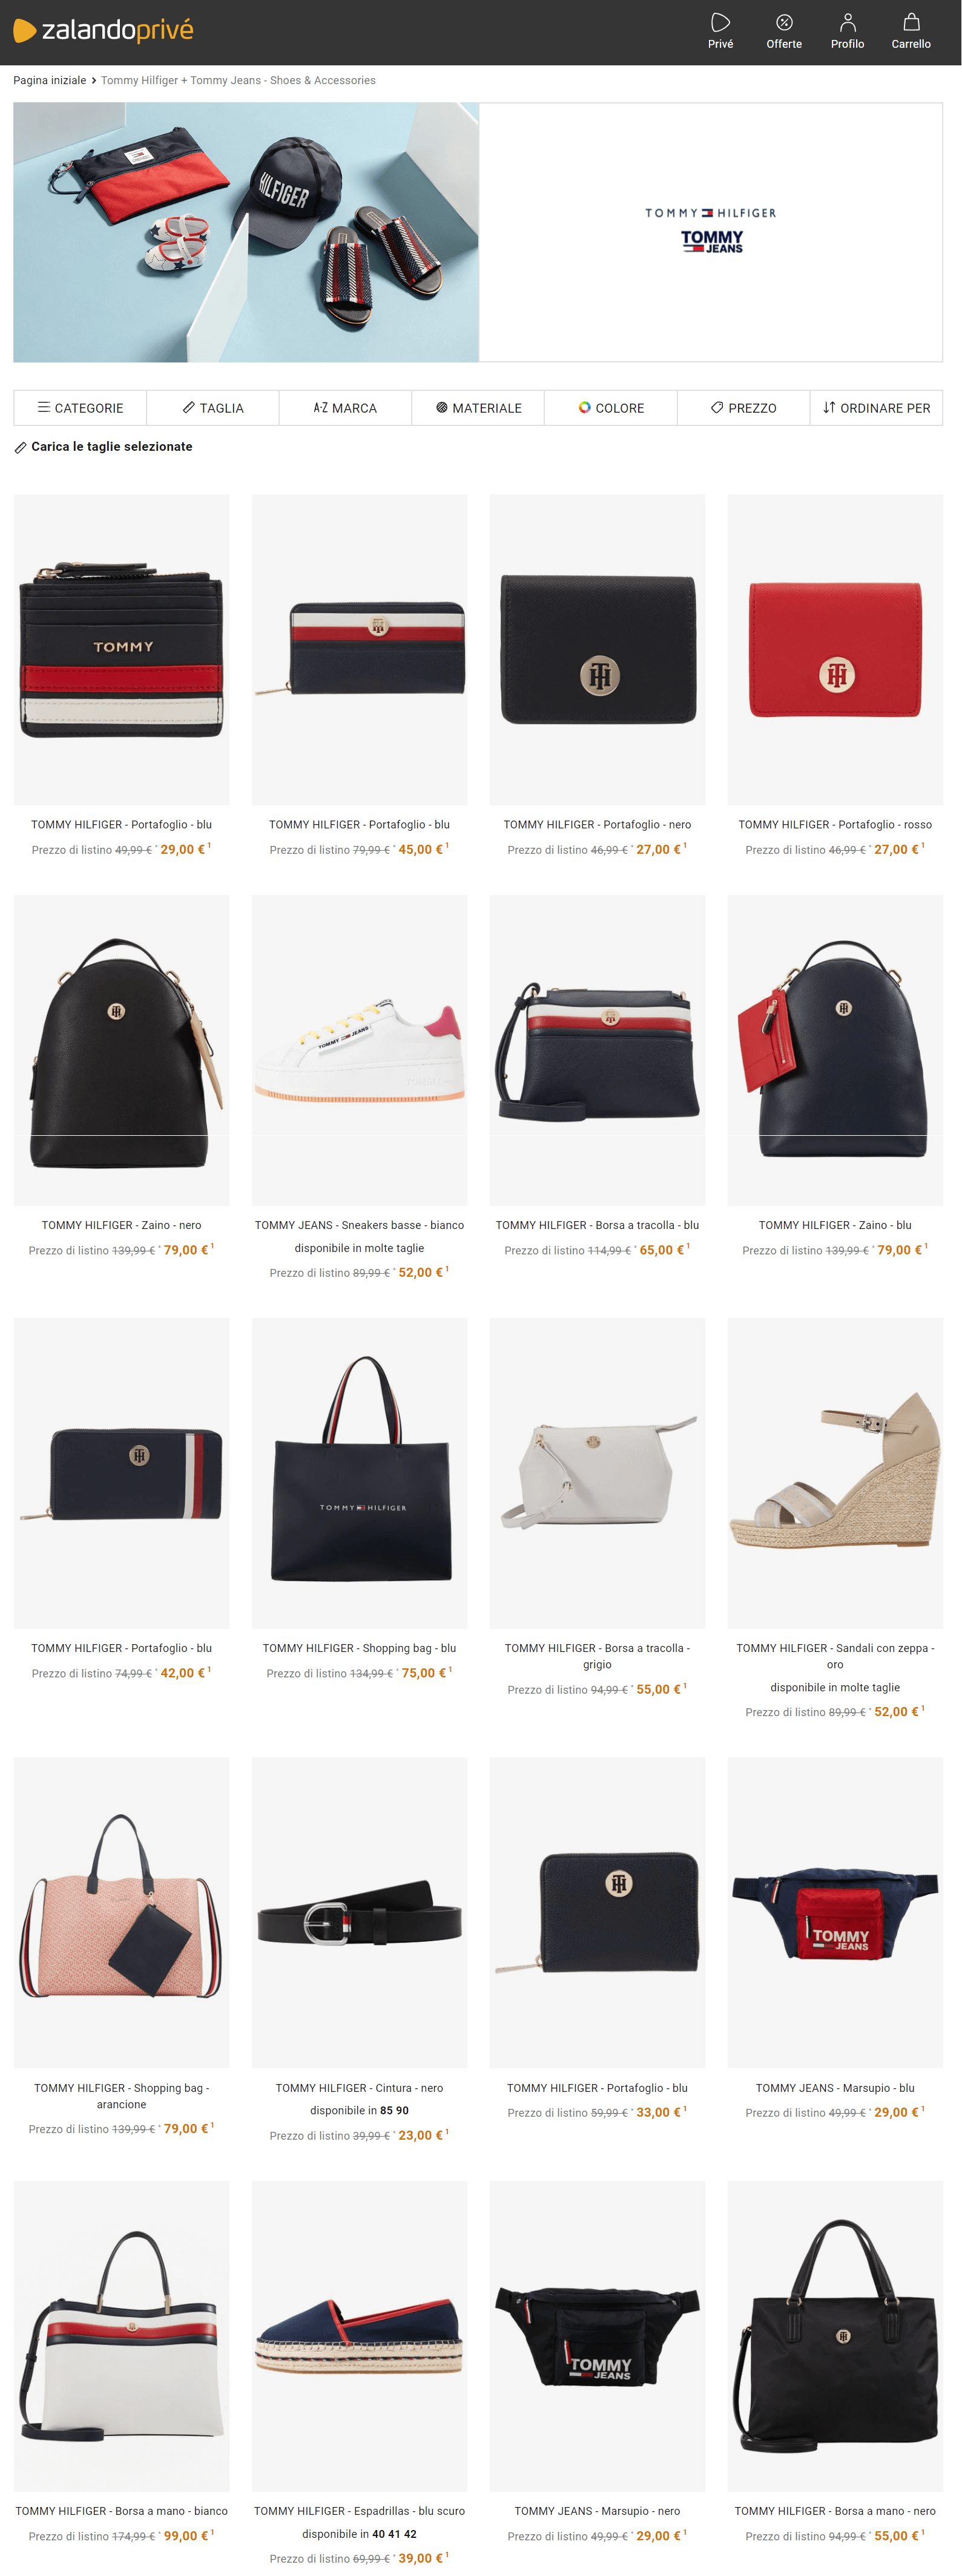 tommy hilfigher outlet zalando prive